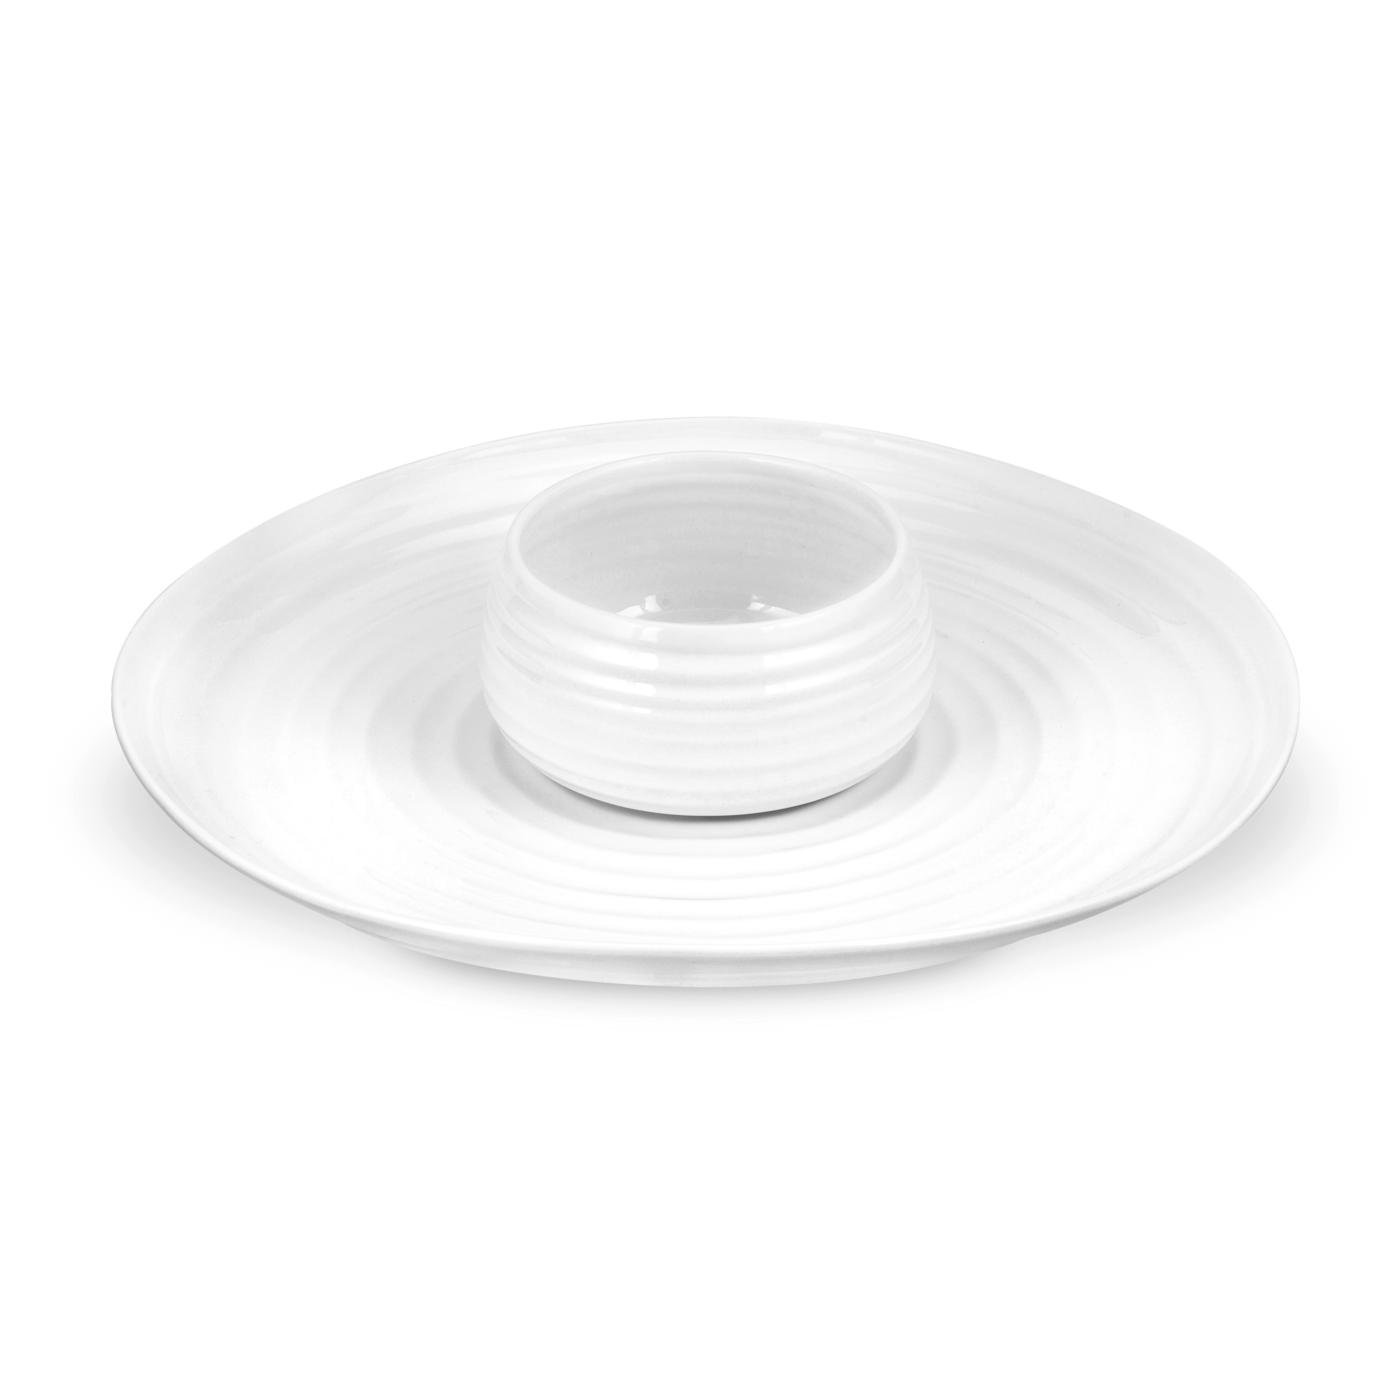 Portmeirion Sophie Conran White 2-Piece Chip and Dip